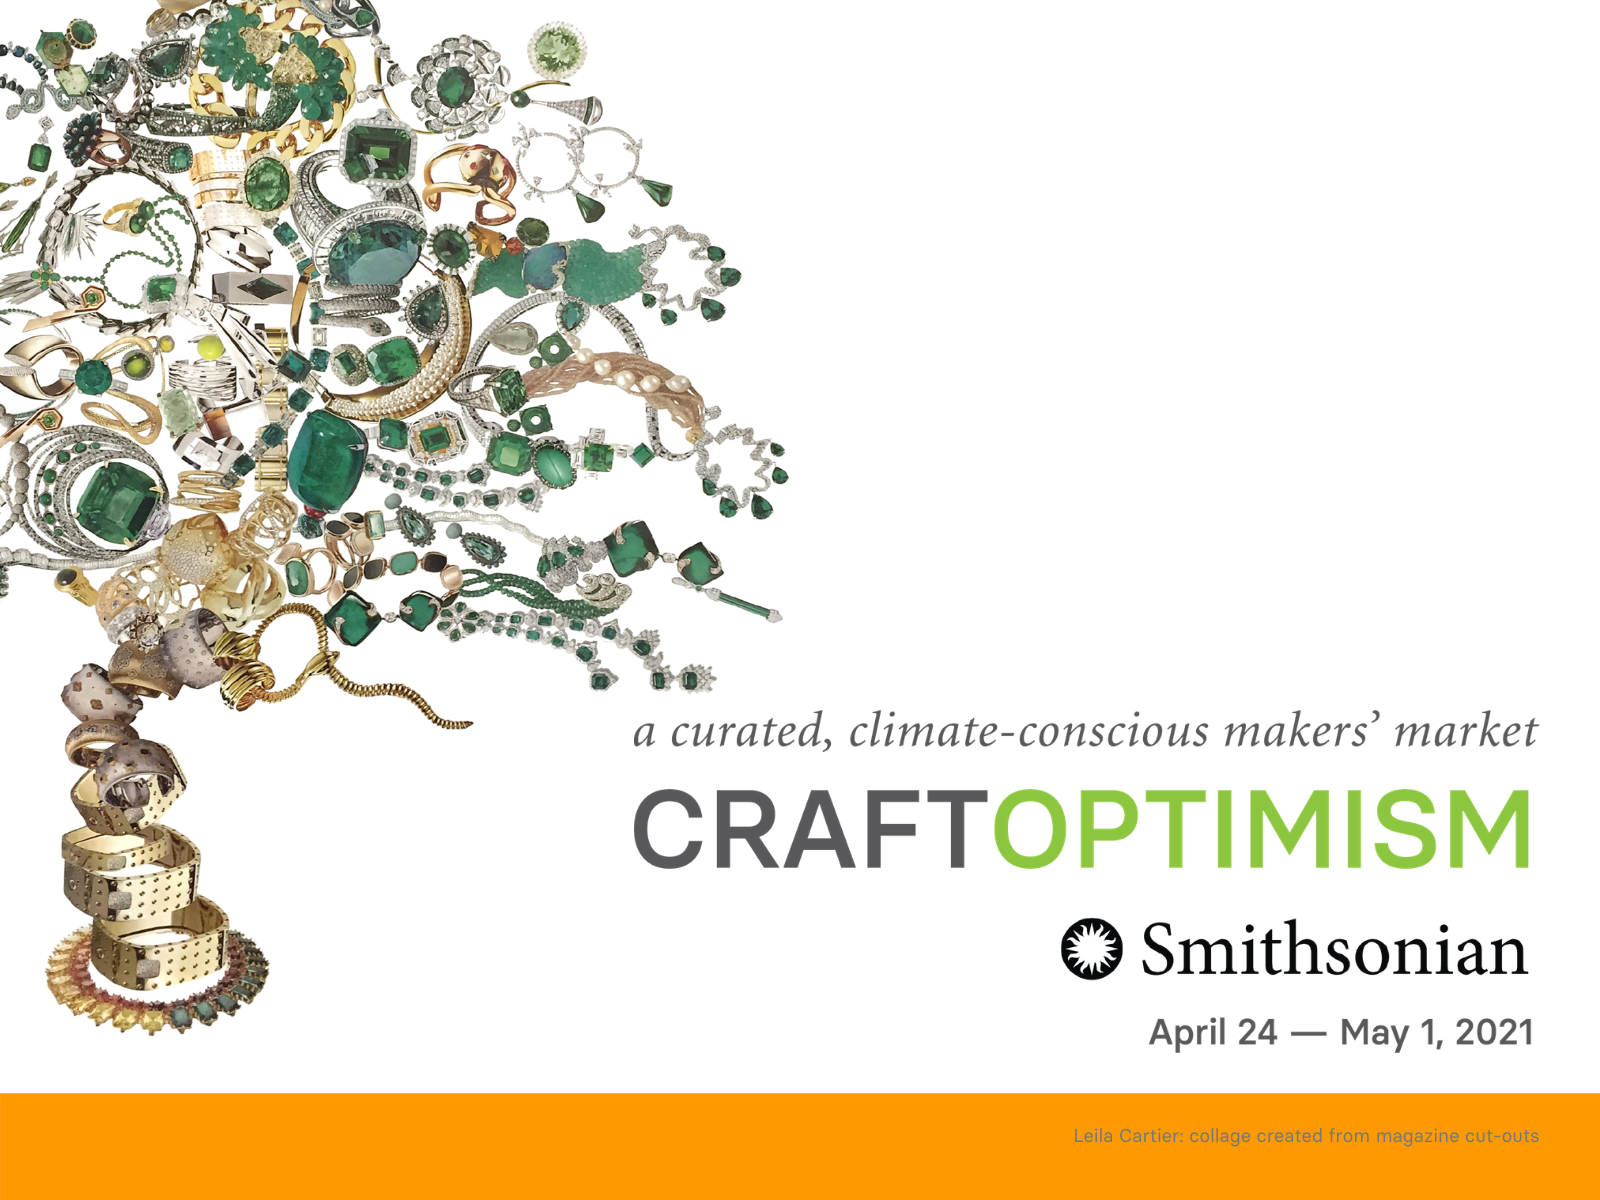 Craft Optimism graphic with collage of ornate jewelry